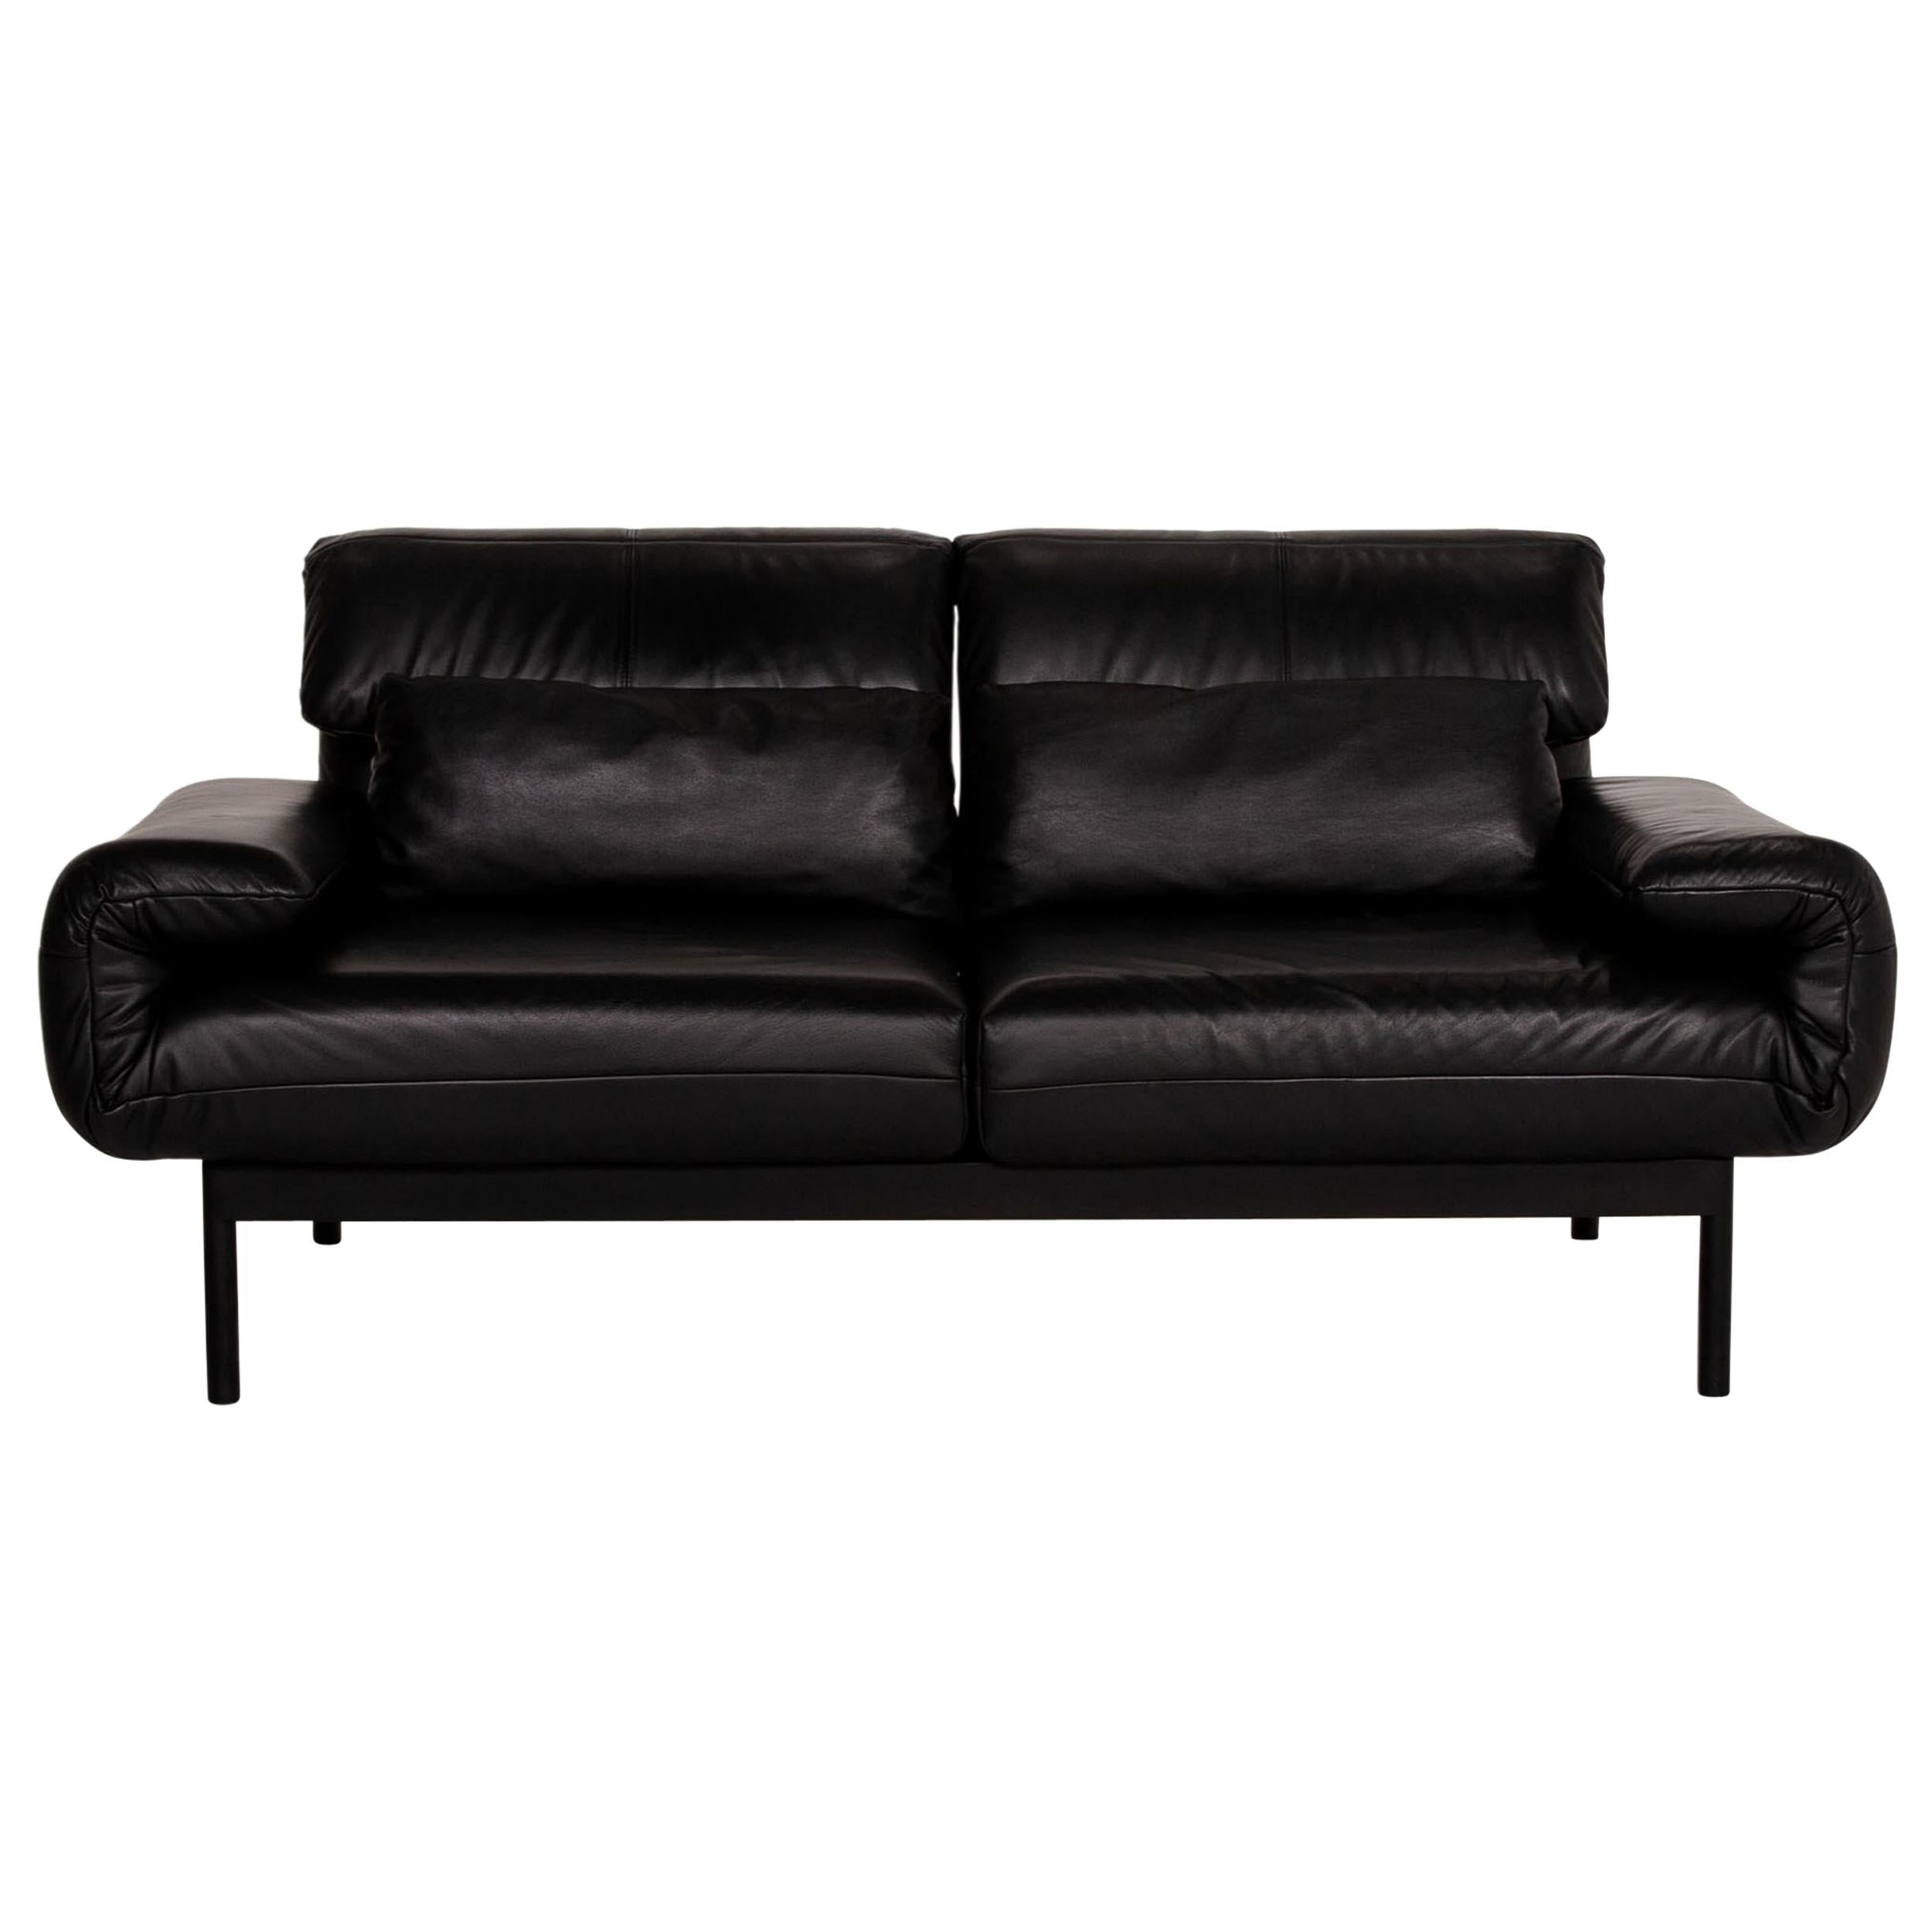 Rolf Benz Plura Leather Sofa Black Two-Seater Couch Function Relaxation Function